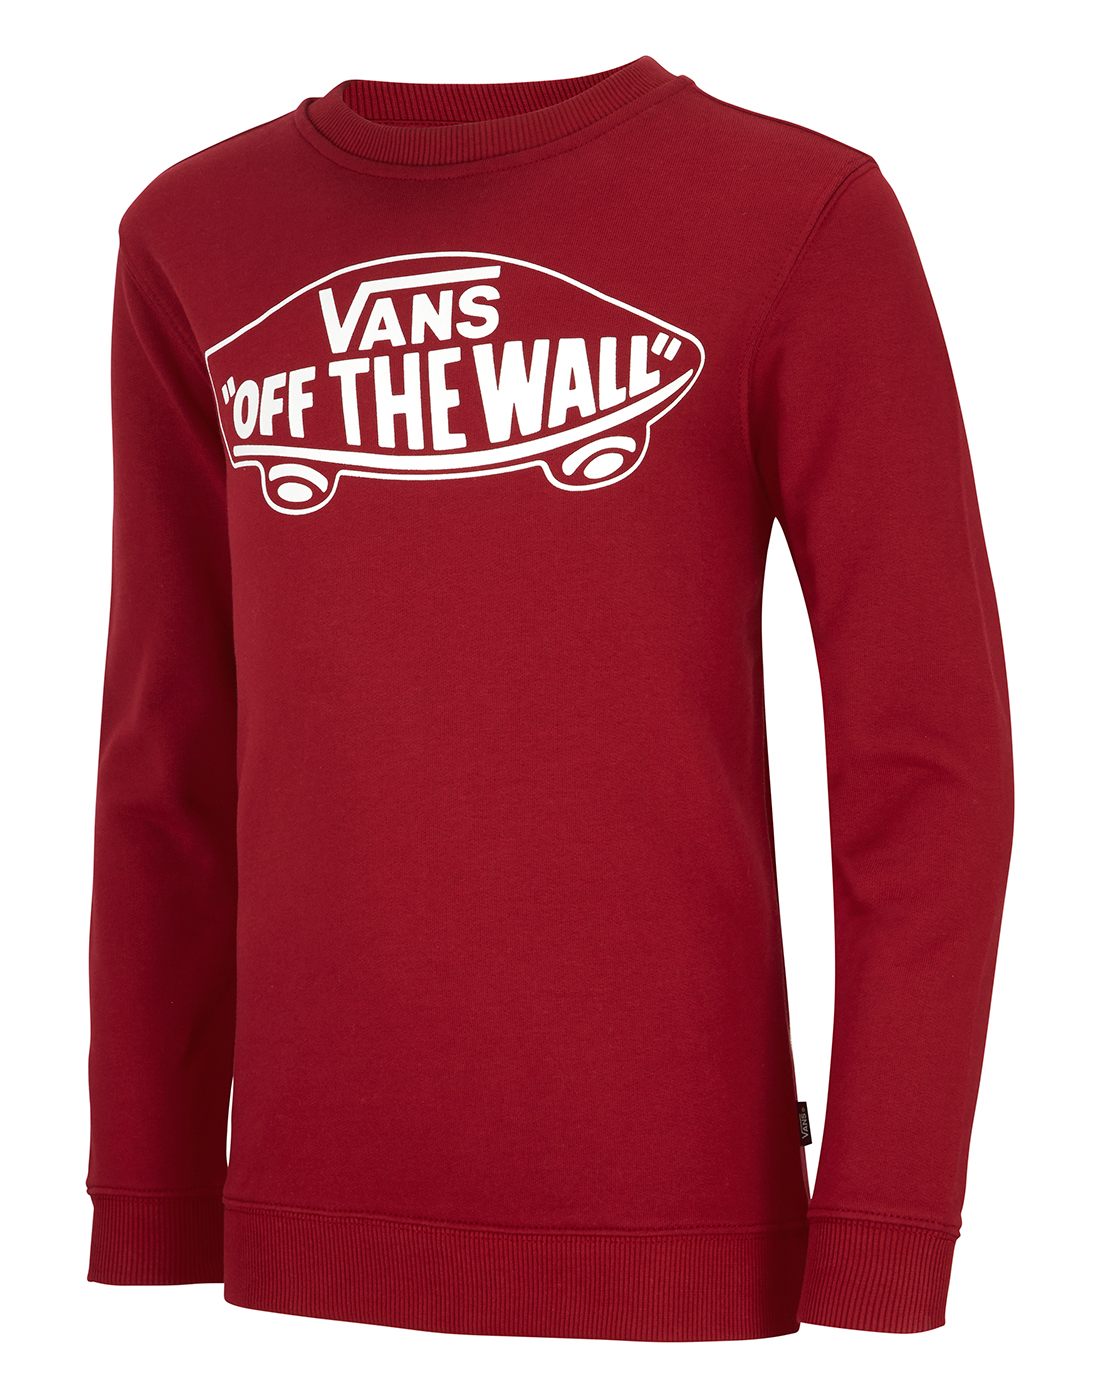 845183e699e6 Kid s Red Vans  Off The Wall  Sweatshirt